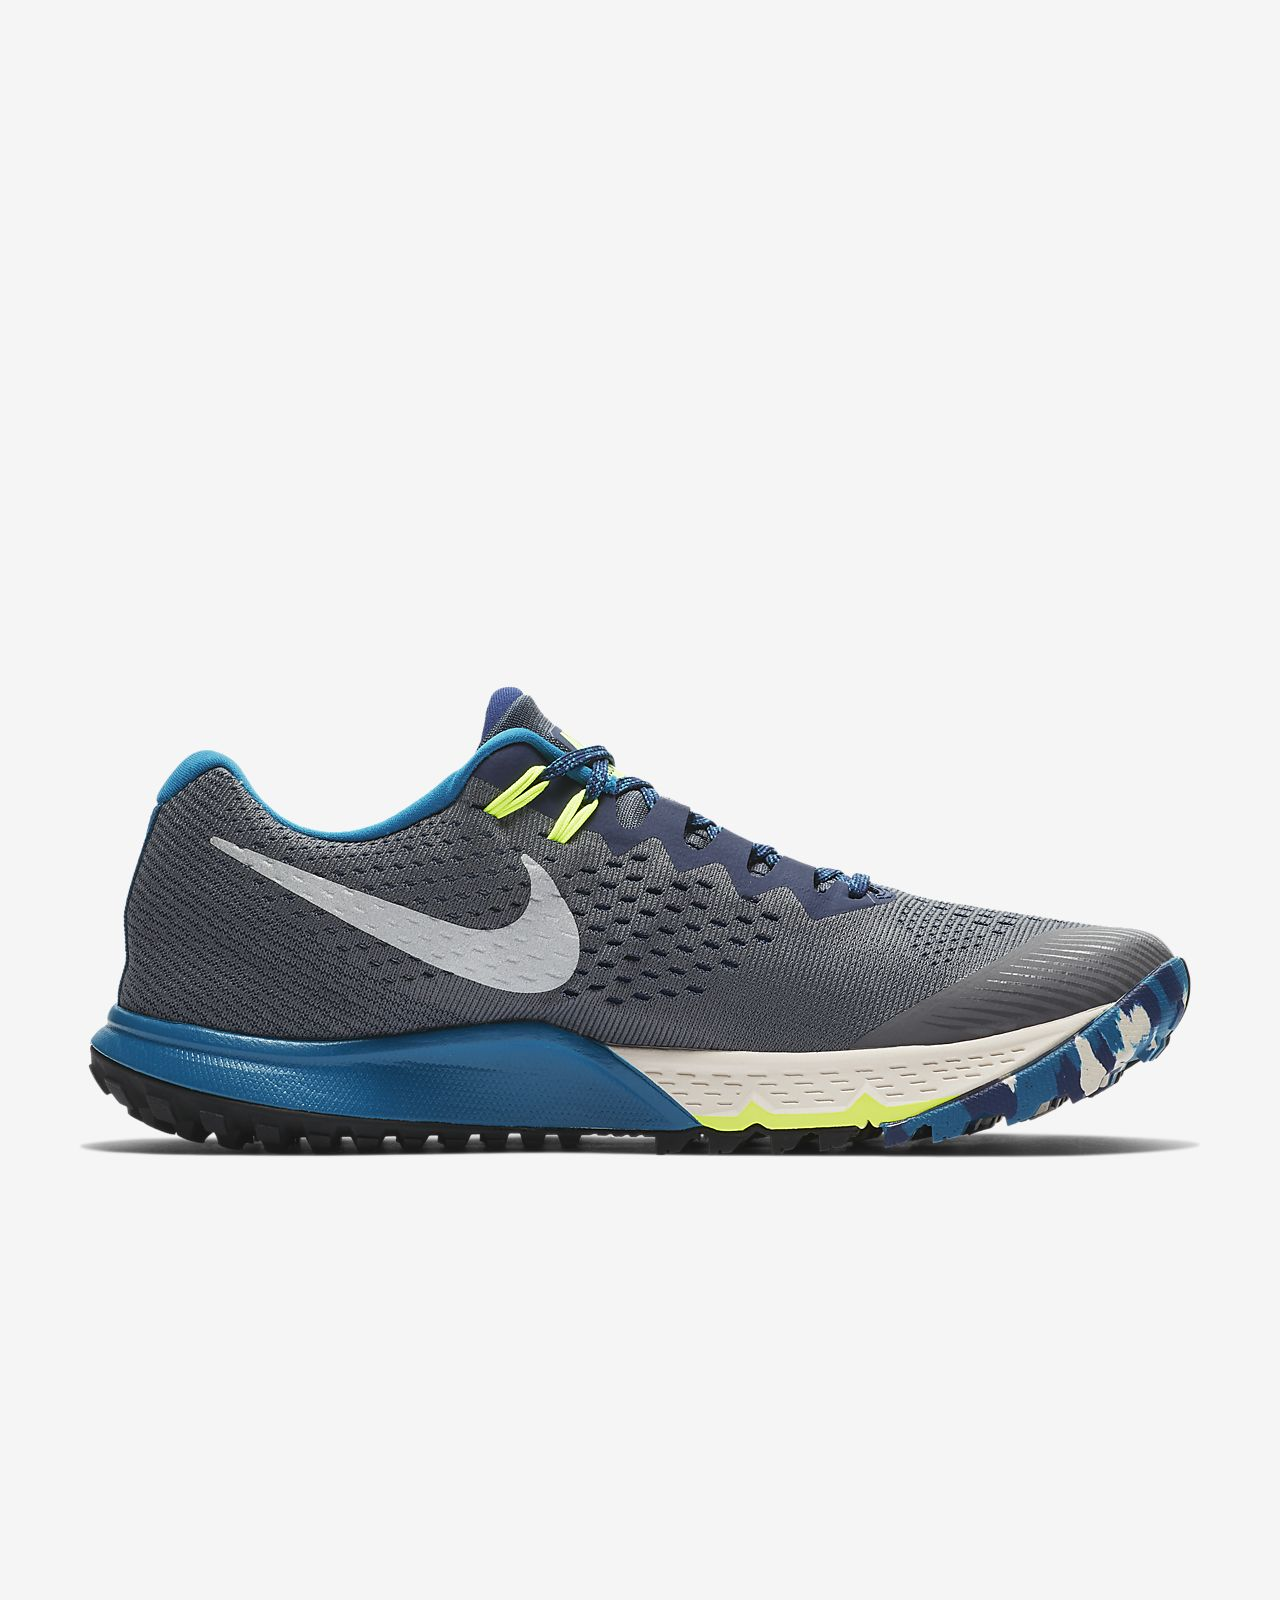 reputable site 06a4f 97a29 ... Nike Air Zoom Terra Kiger 4 Men s Running Shoe